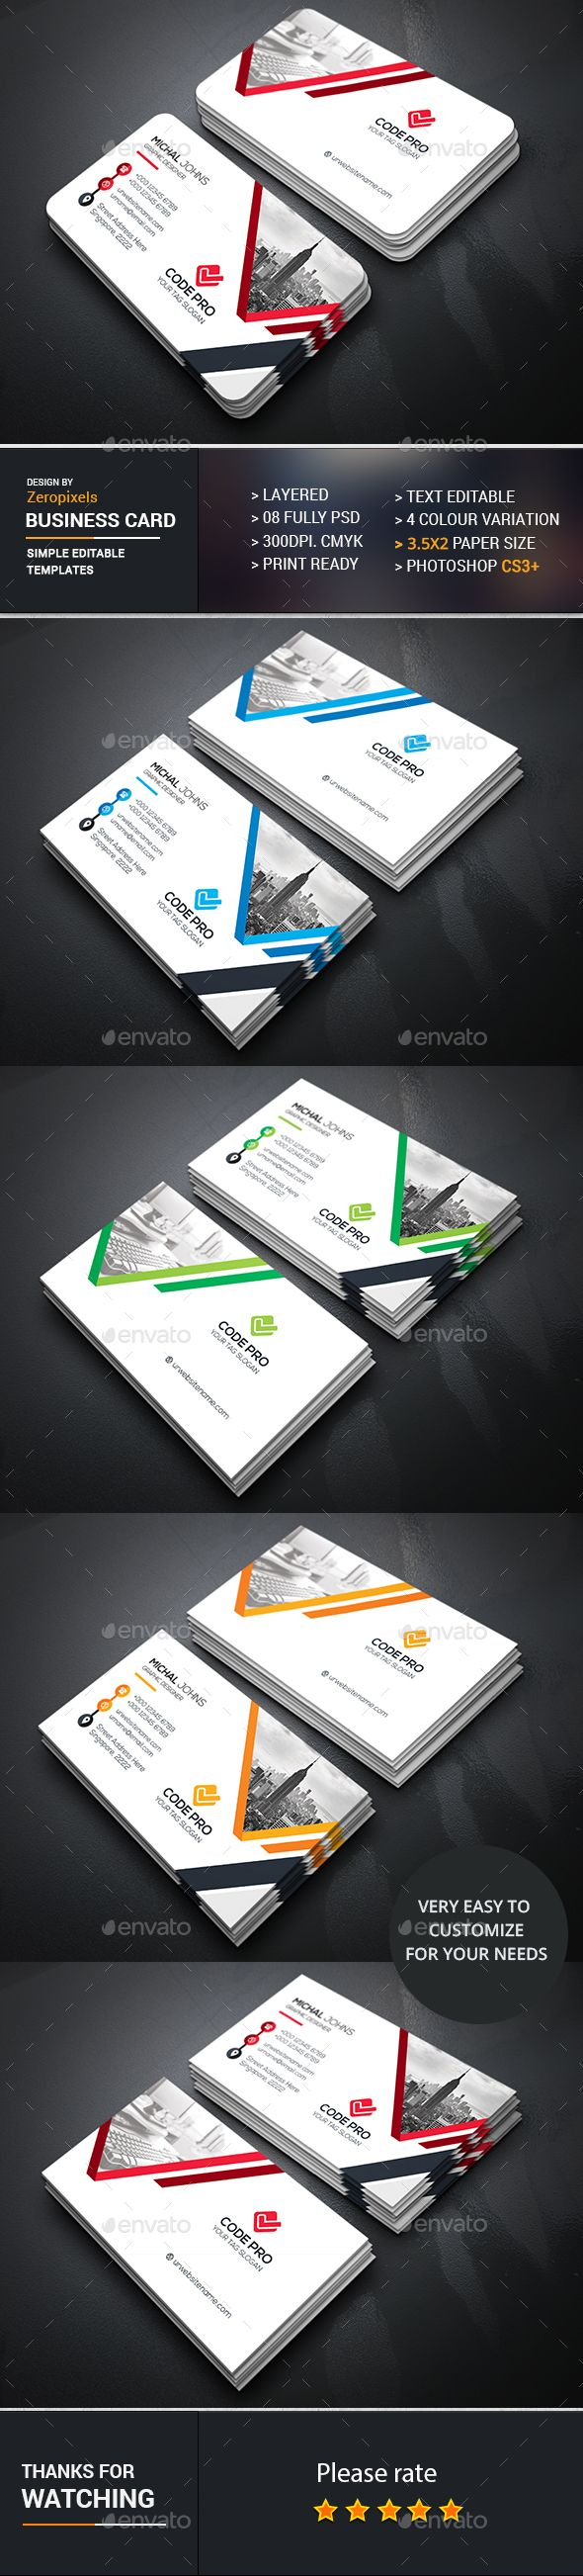 Business Card Design - Business Cards Template PSD. Download here: https://graphicriver.net/item/business-card/16939701?s_rank=171&ref=yinkira